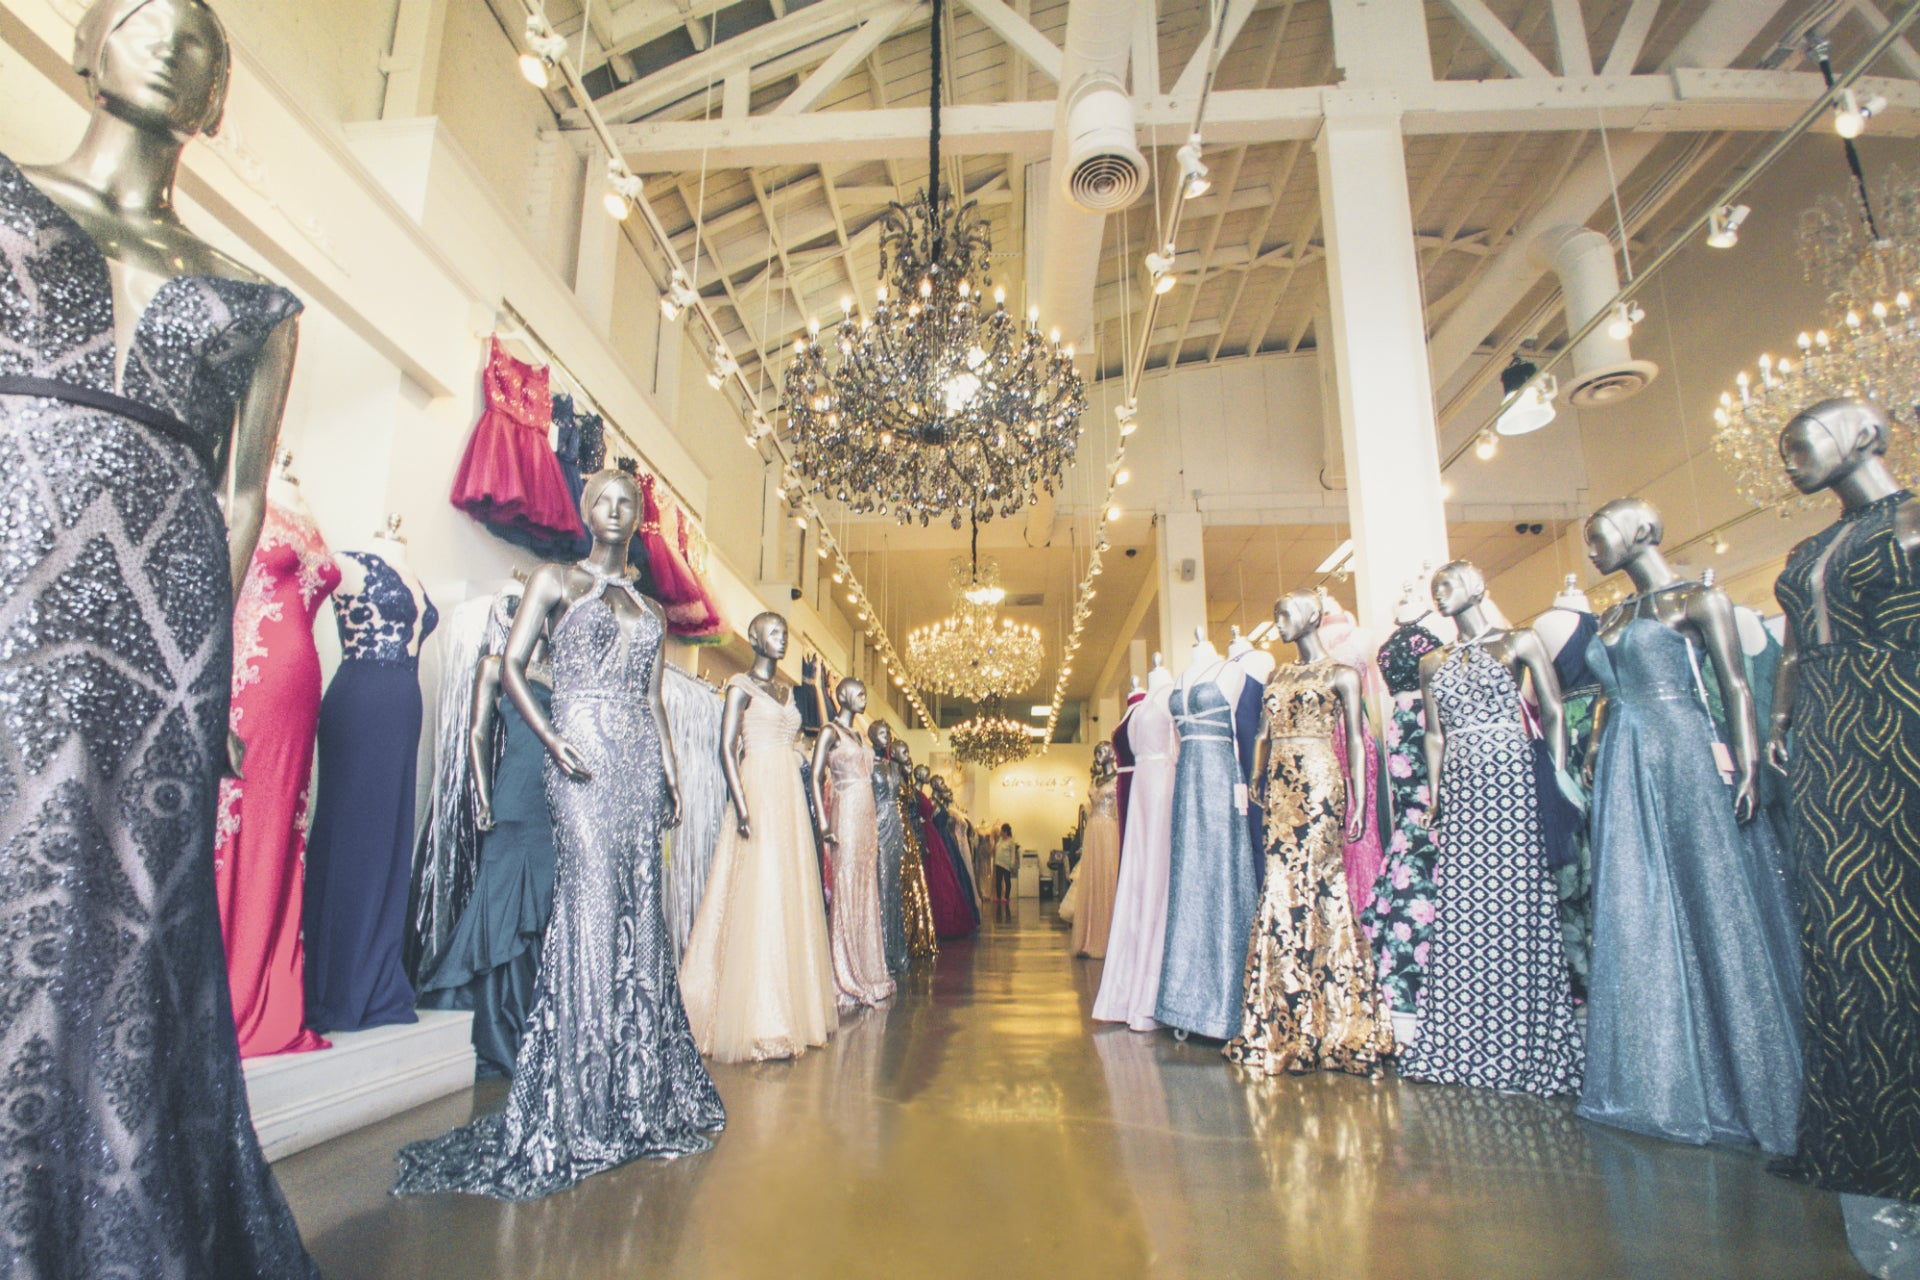 Benefits of selling top quality dresses in your boutique